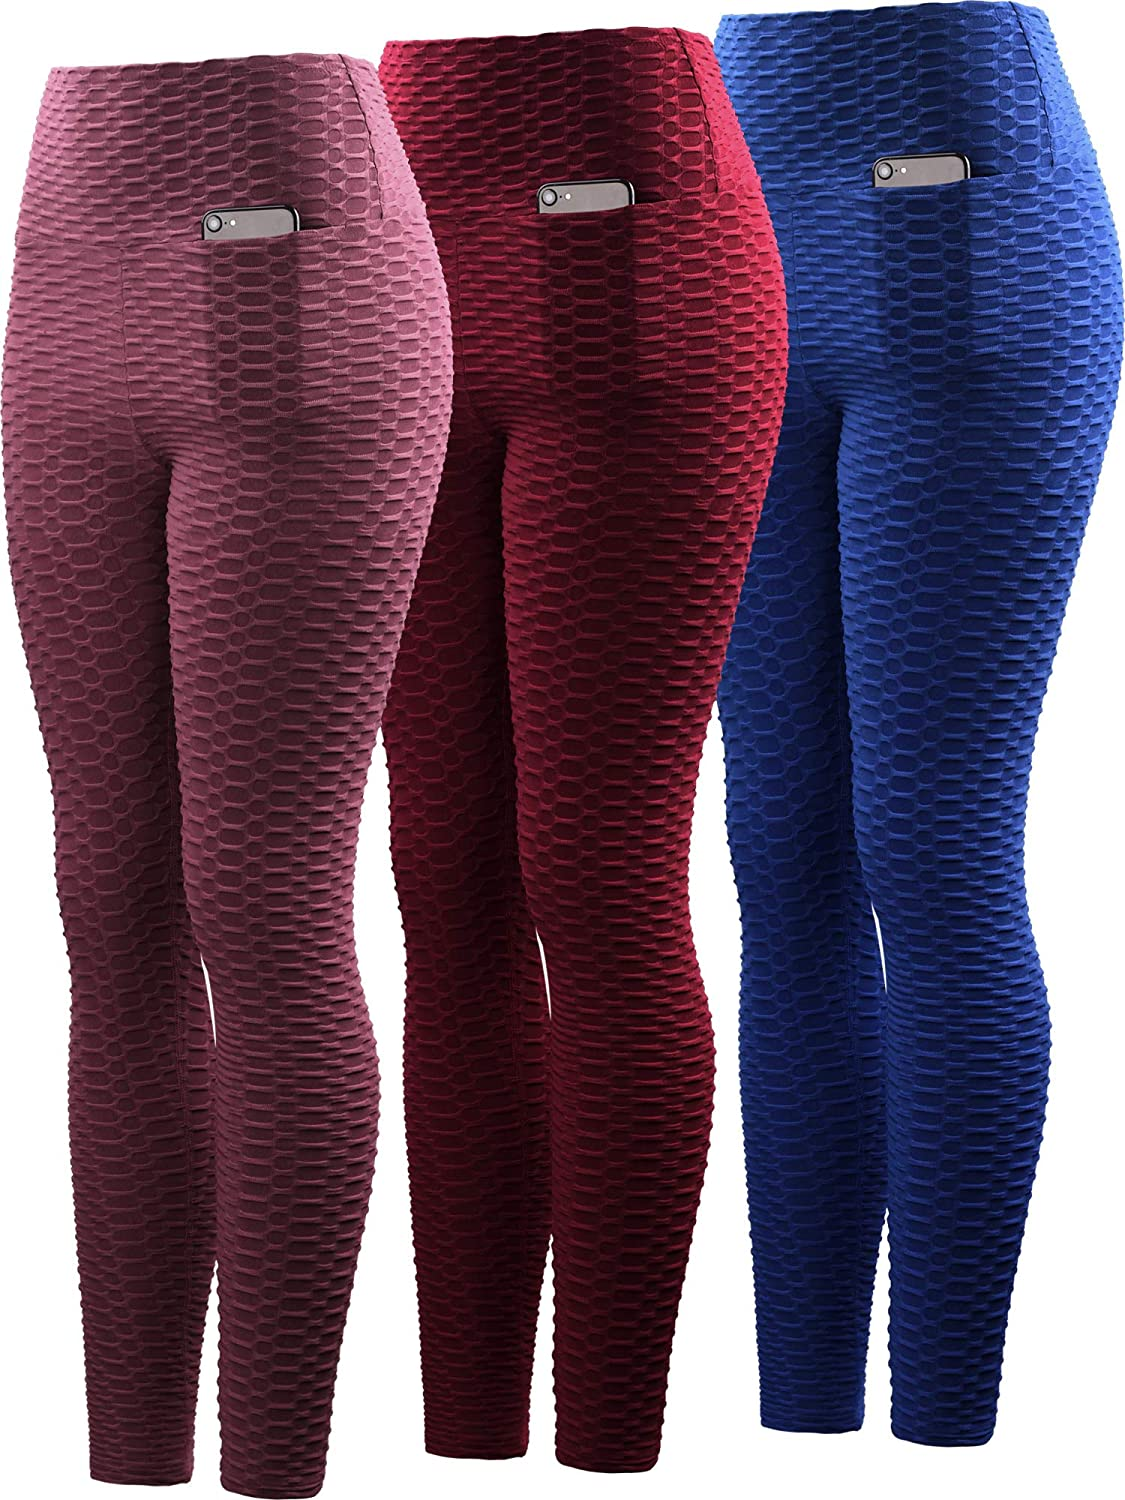 9036 bluee Red Maroon,3 Piece Neleus High Waist Running Workout Leggings for Yoga with Pockets